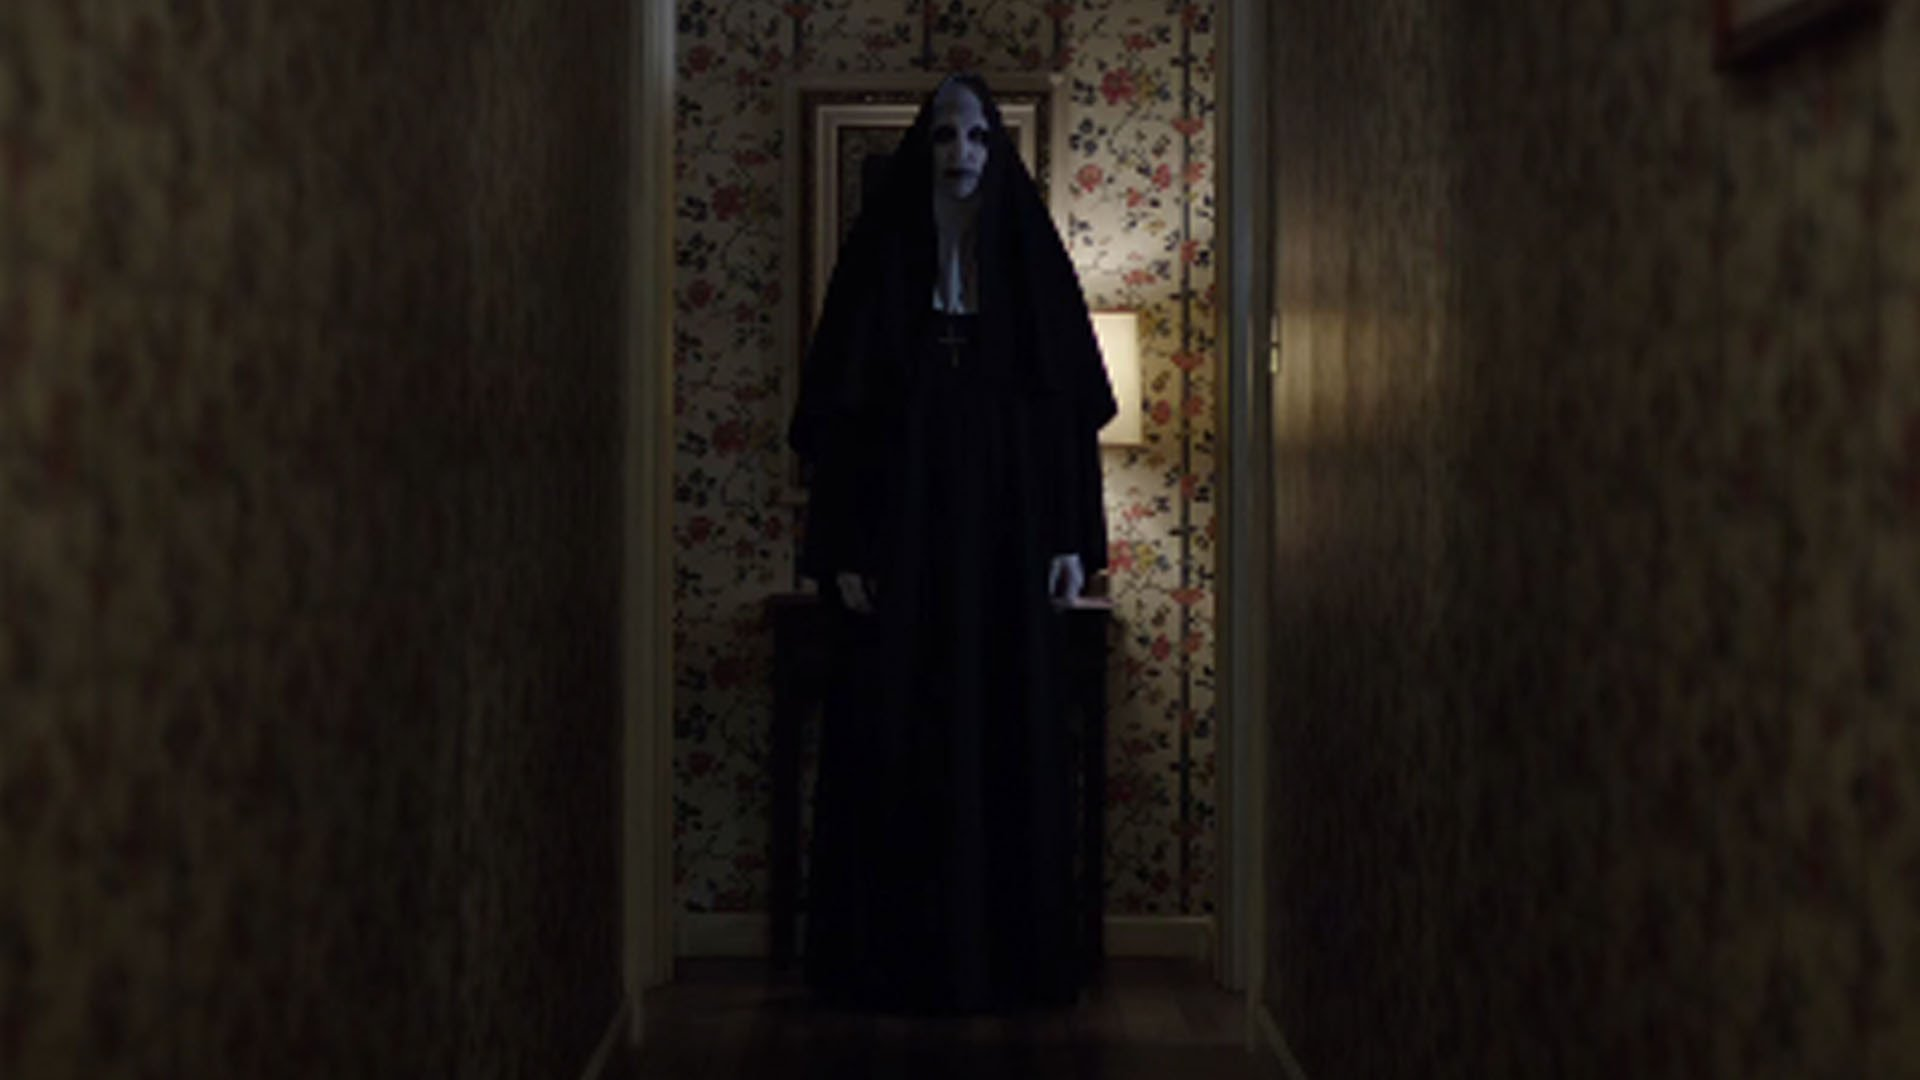 conjuringnun - The Conjuring 2 Spinoff The Nun Casts a Farmiga!